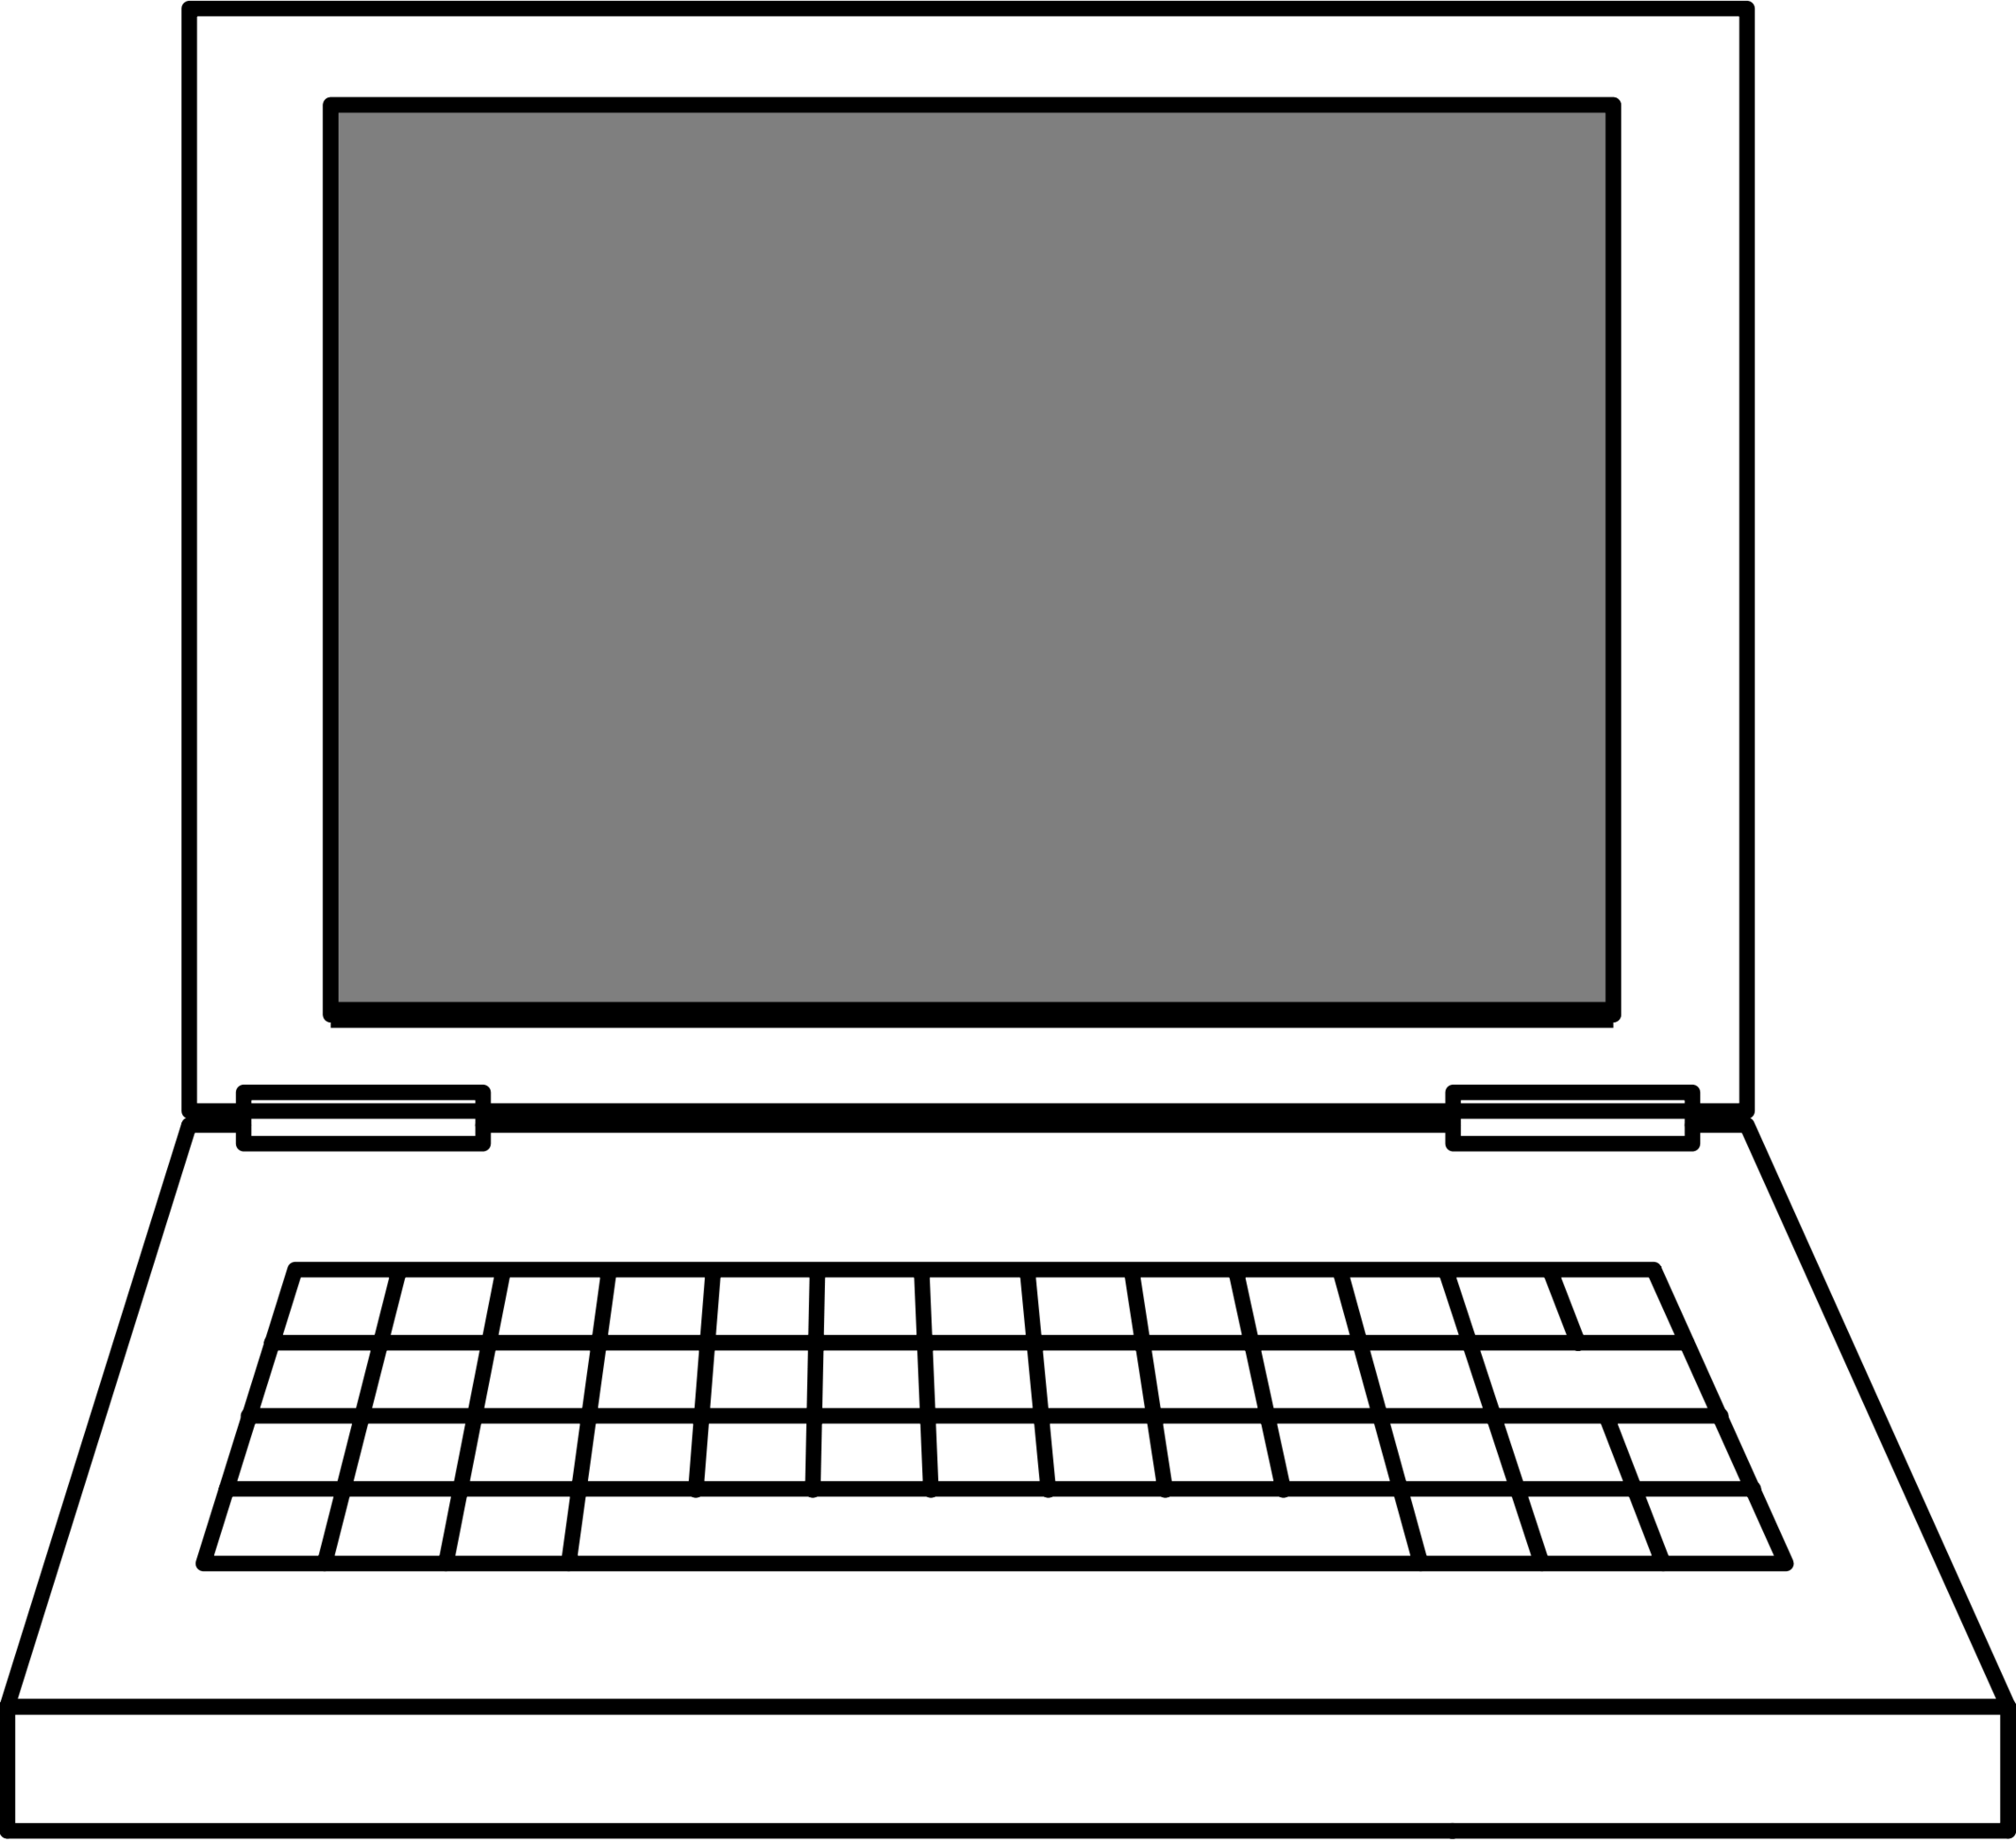 Clip art computer black. Game clipart pc game